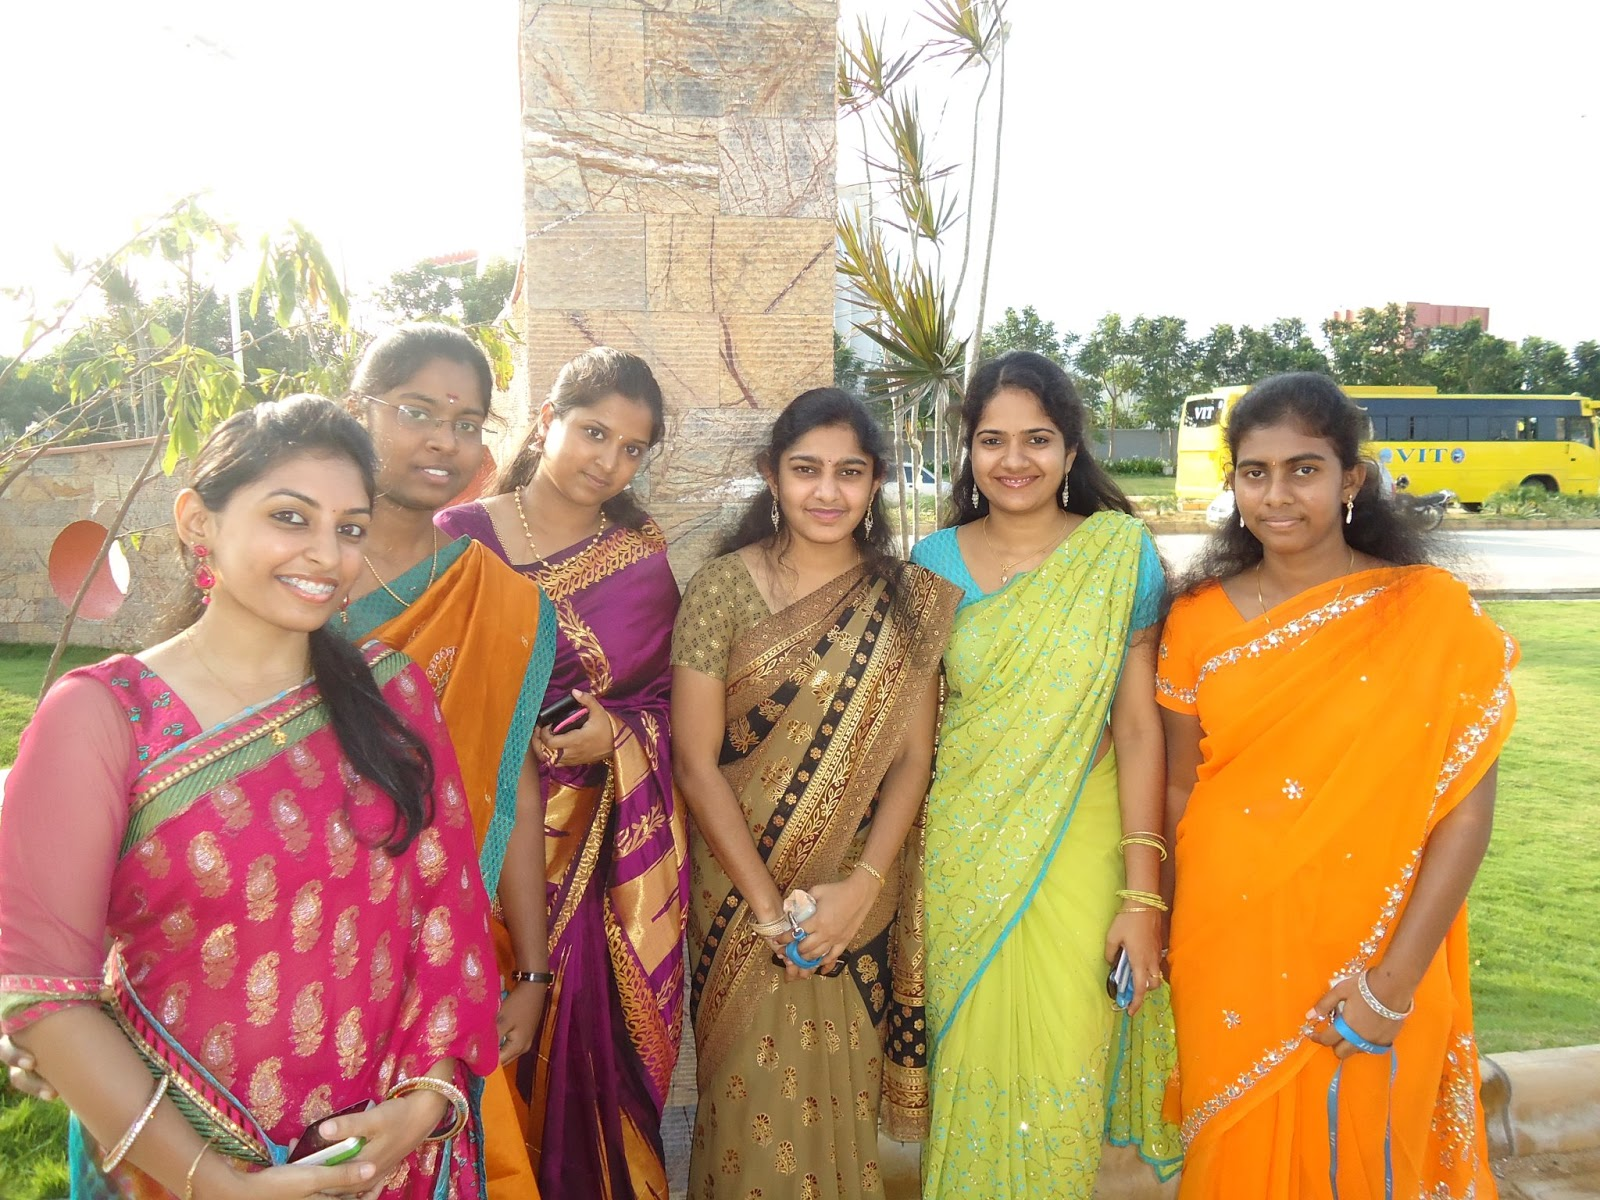 Homely Indian Girls Indian Girls In Their Traditional Outfits-5964